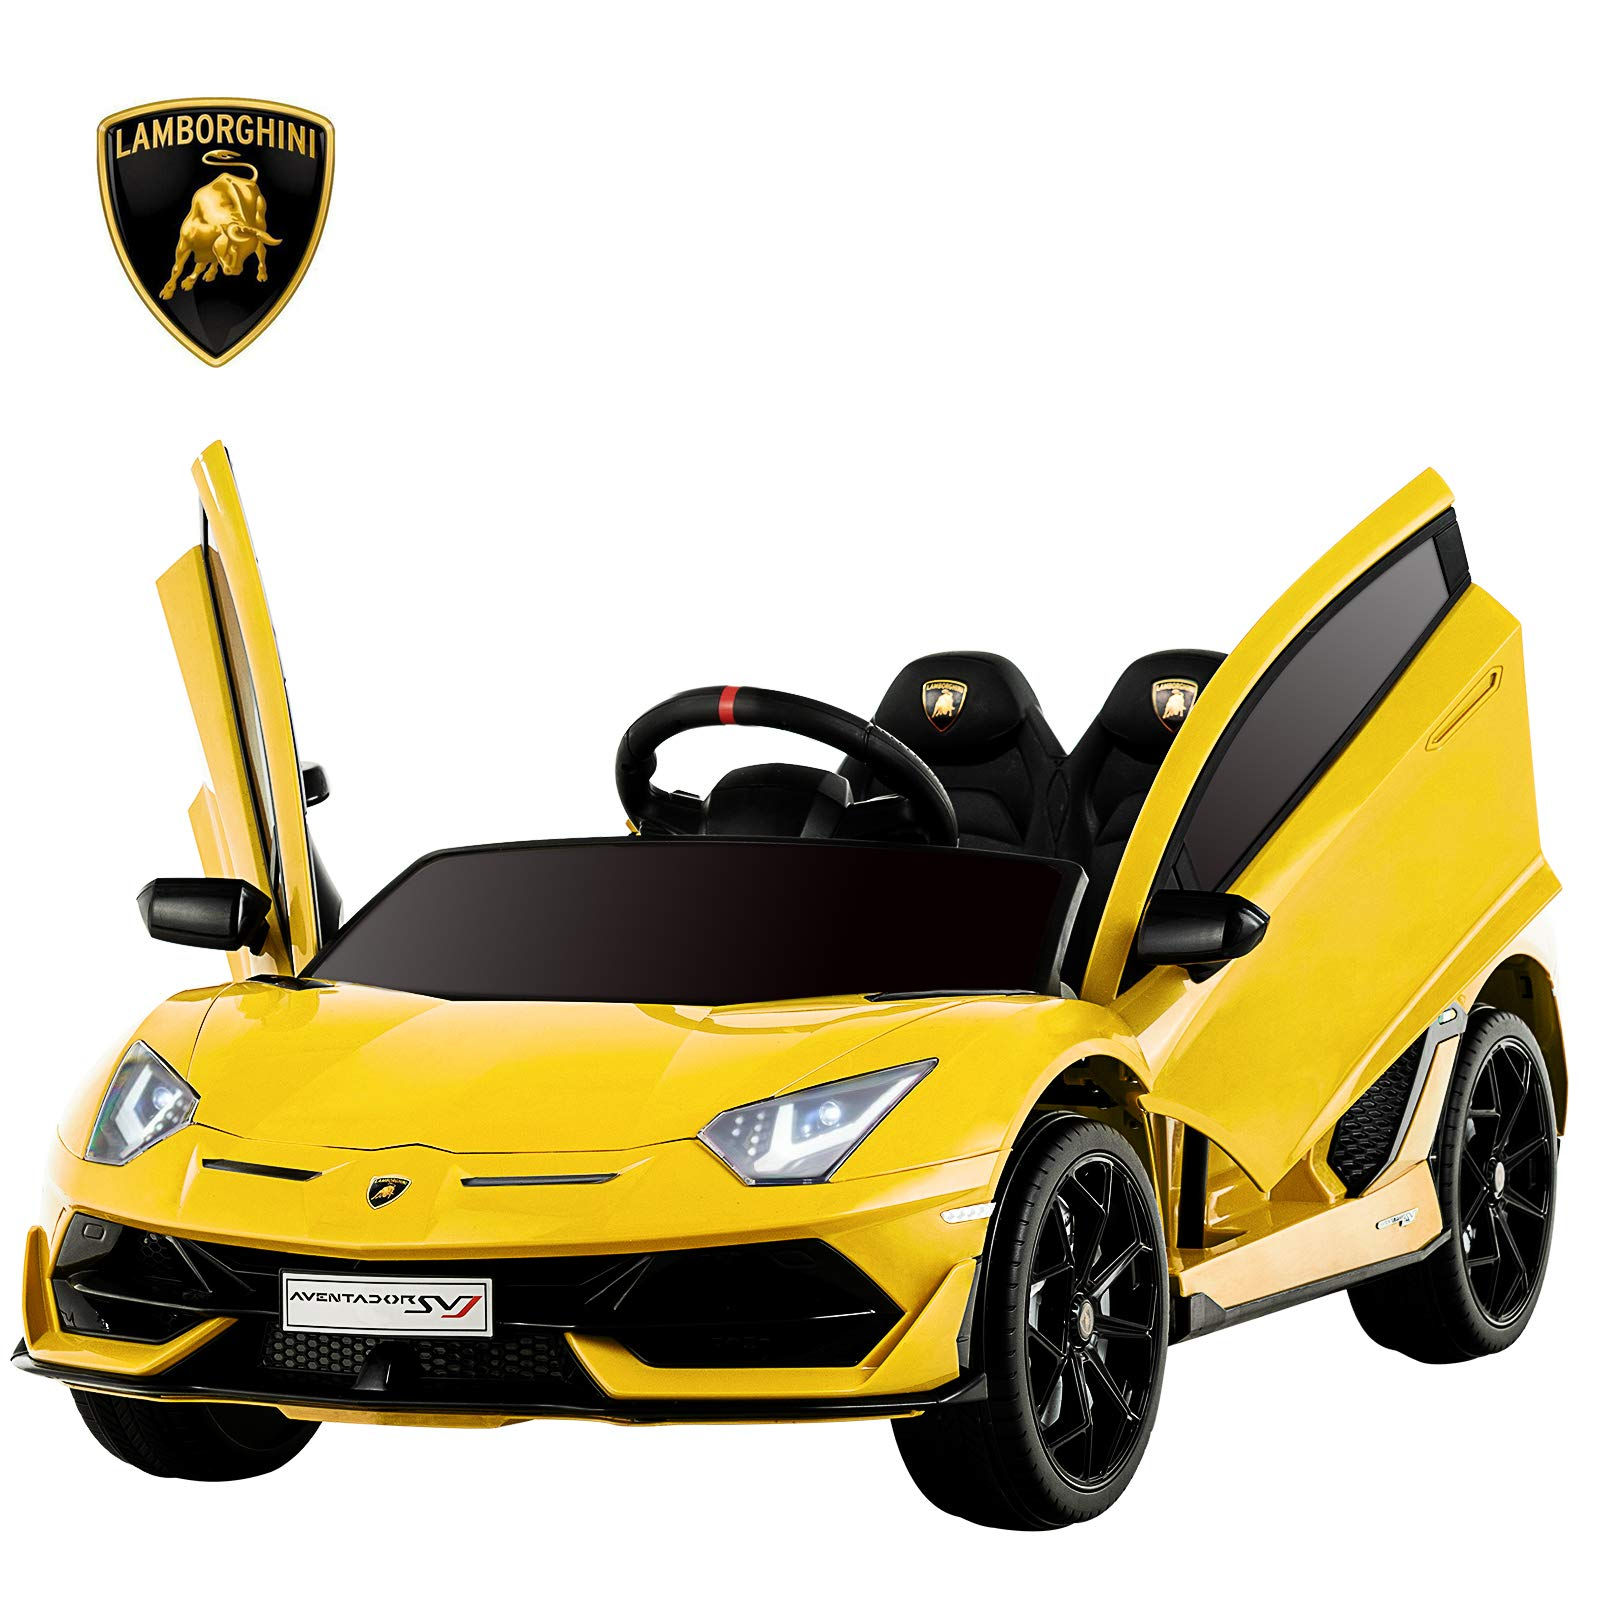 Uenjoy 12V Kids Electric Ride On Car Lamborghini Aventador SVJ Motorized Vehicles with Remote Control, Battery Powered, LED Lights, Wheels Suspension, Music, Horn,Compatible with Lamborghini,Yellow